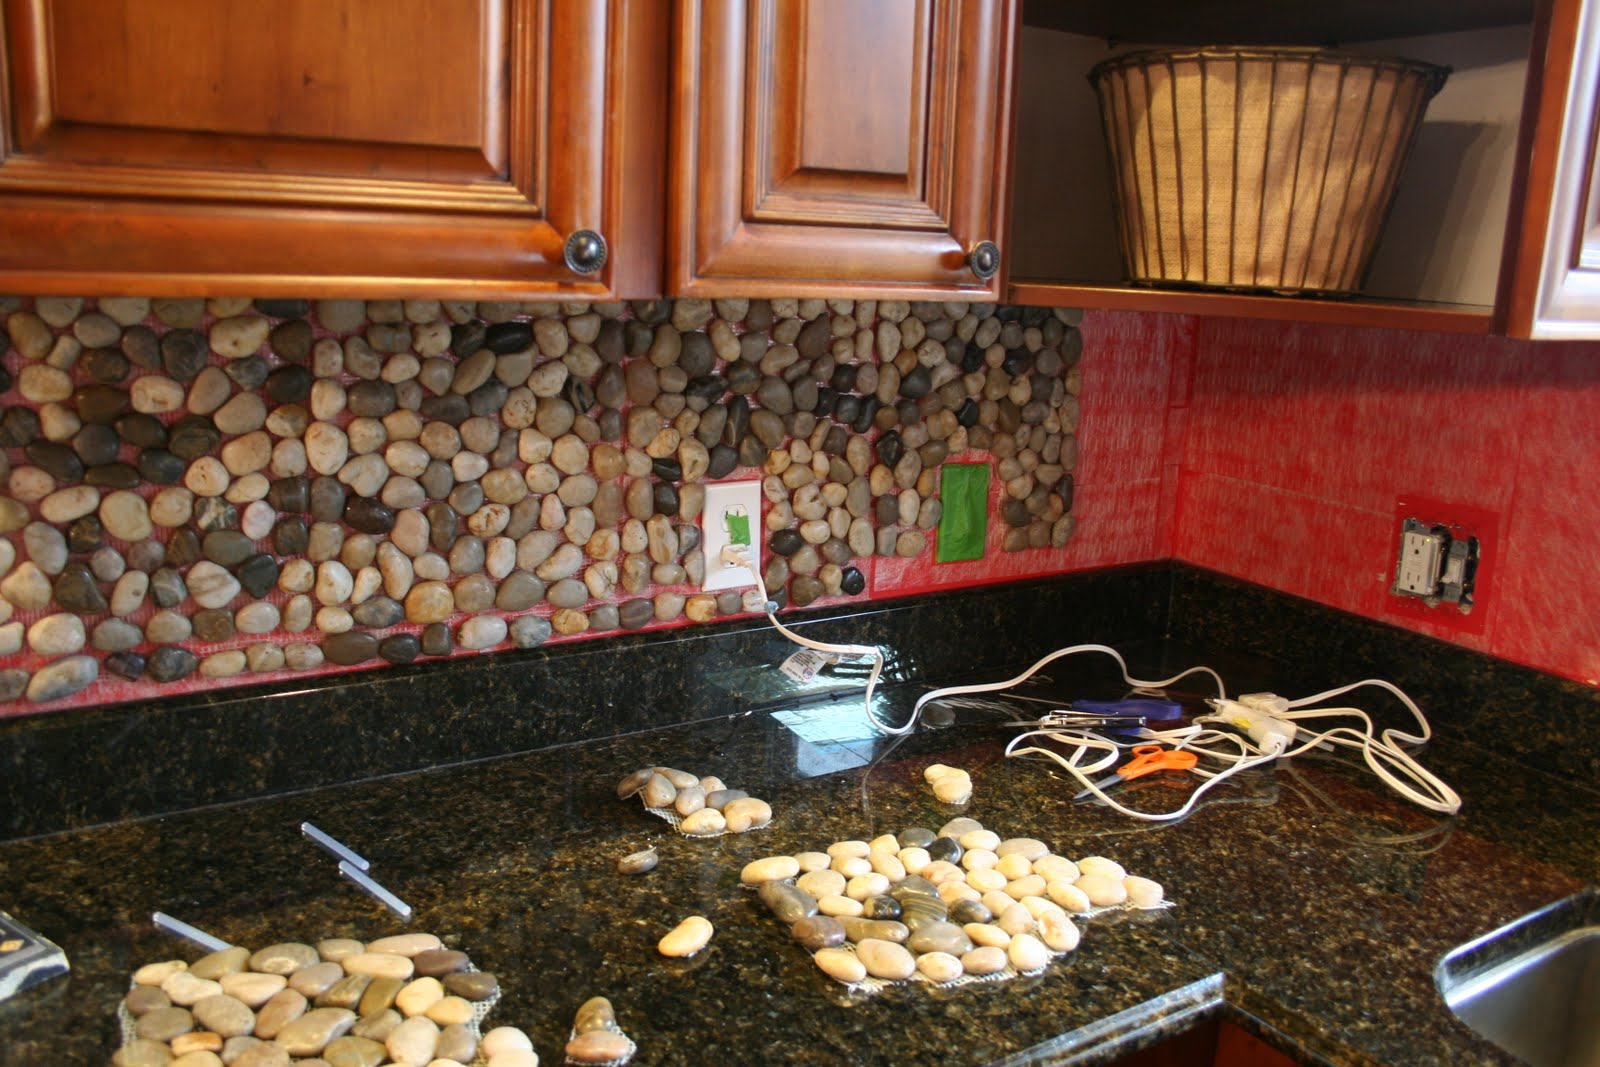 garden stone kitchen backsplash tutorial how to backsplash garden stone kitchen backsplash tutorial how to backsplash